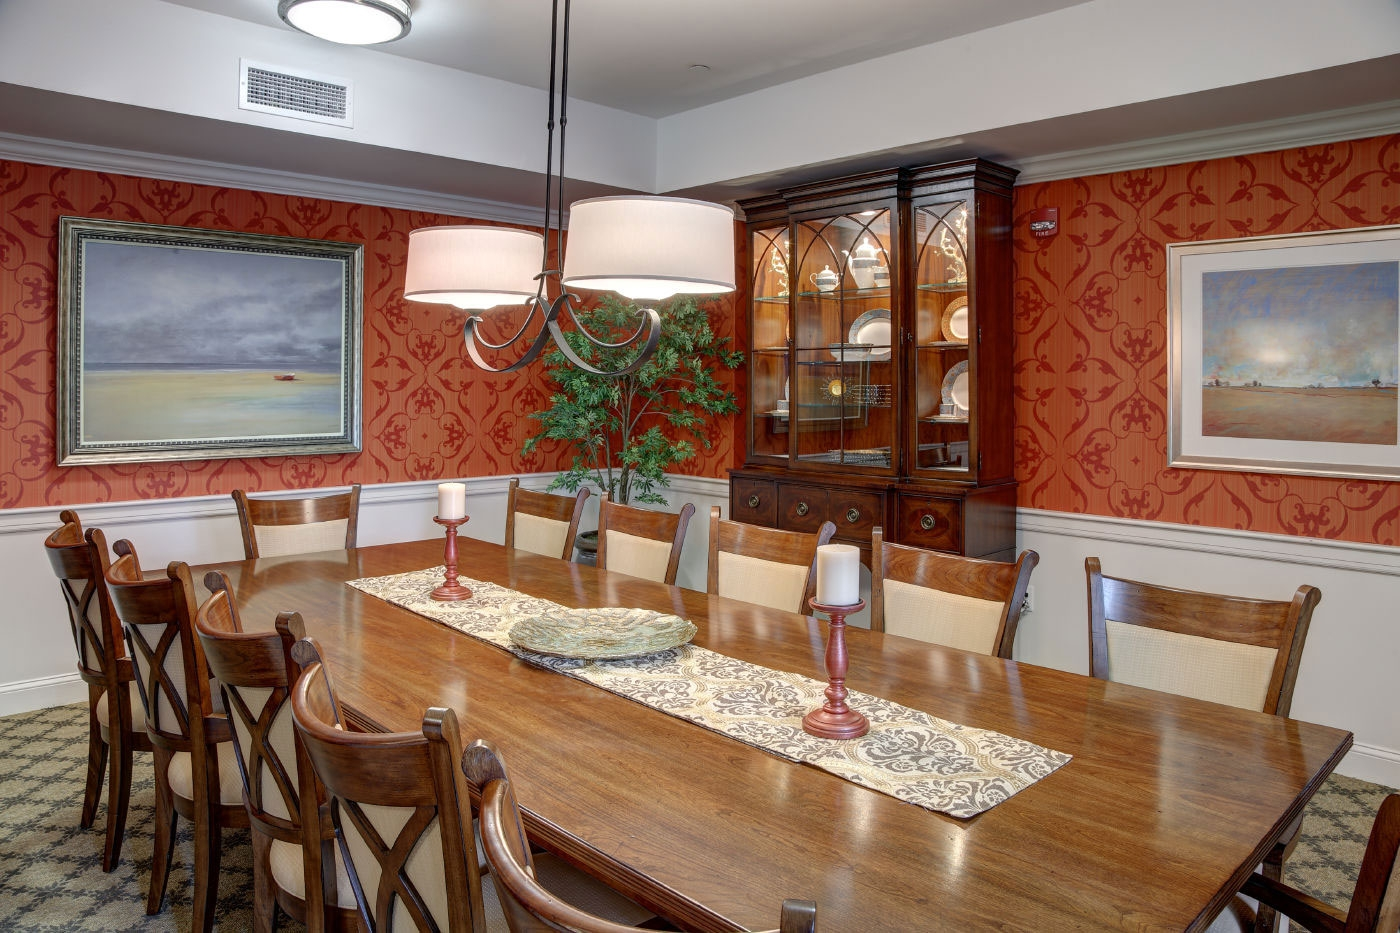 WDC's design for a warm, private family dining area for an assisted living/memory care community